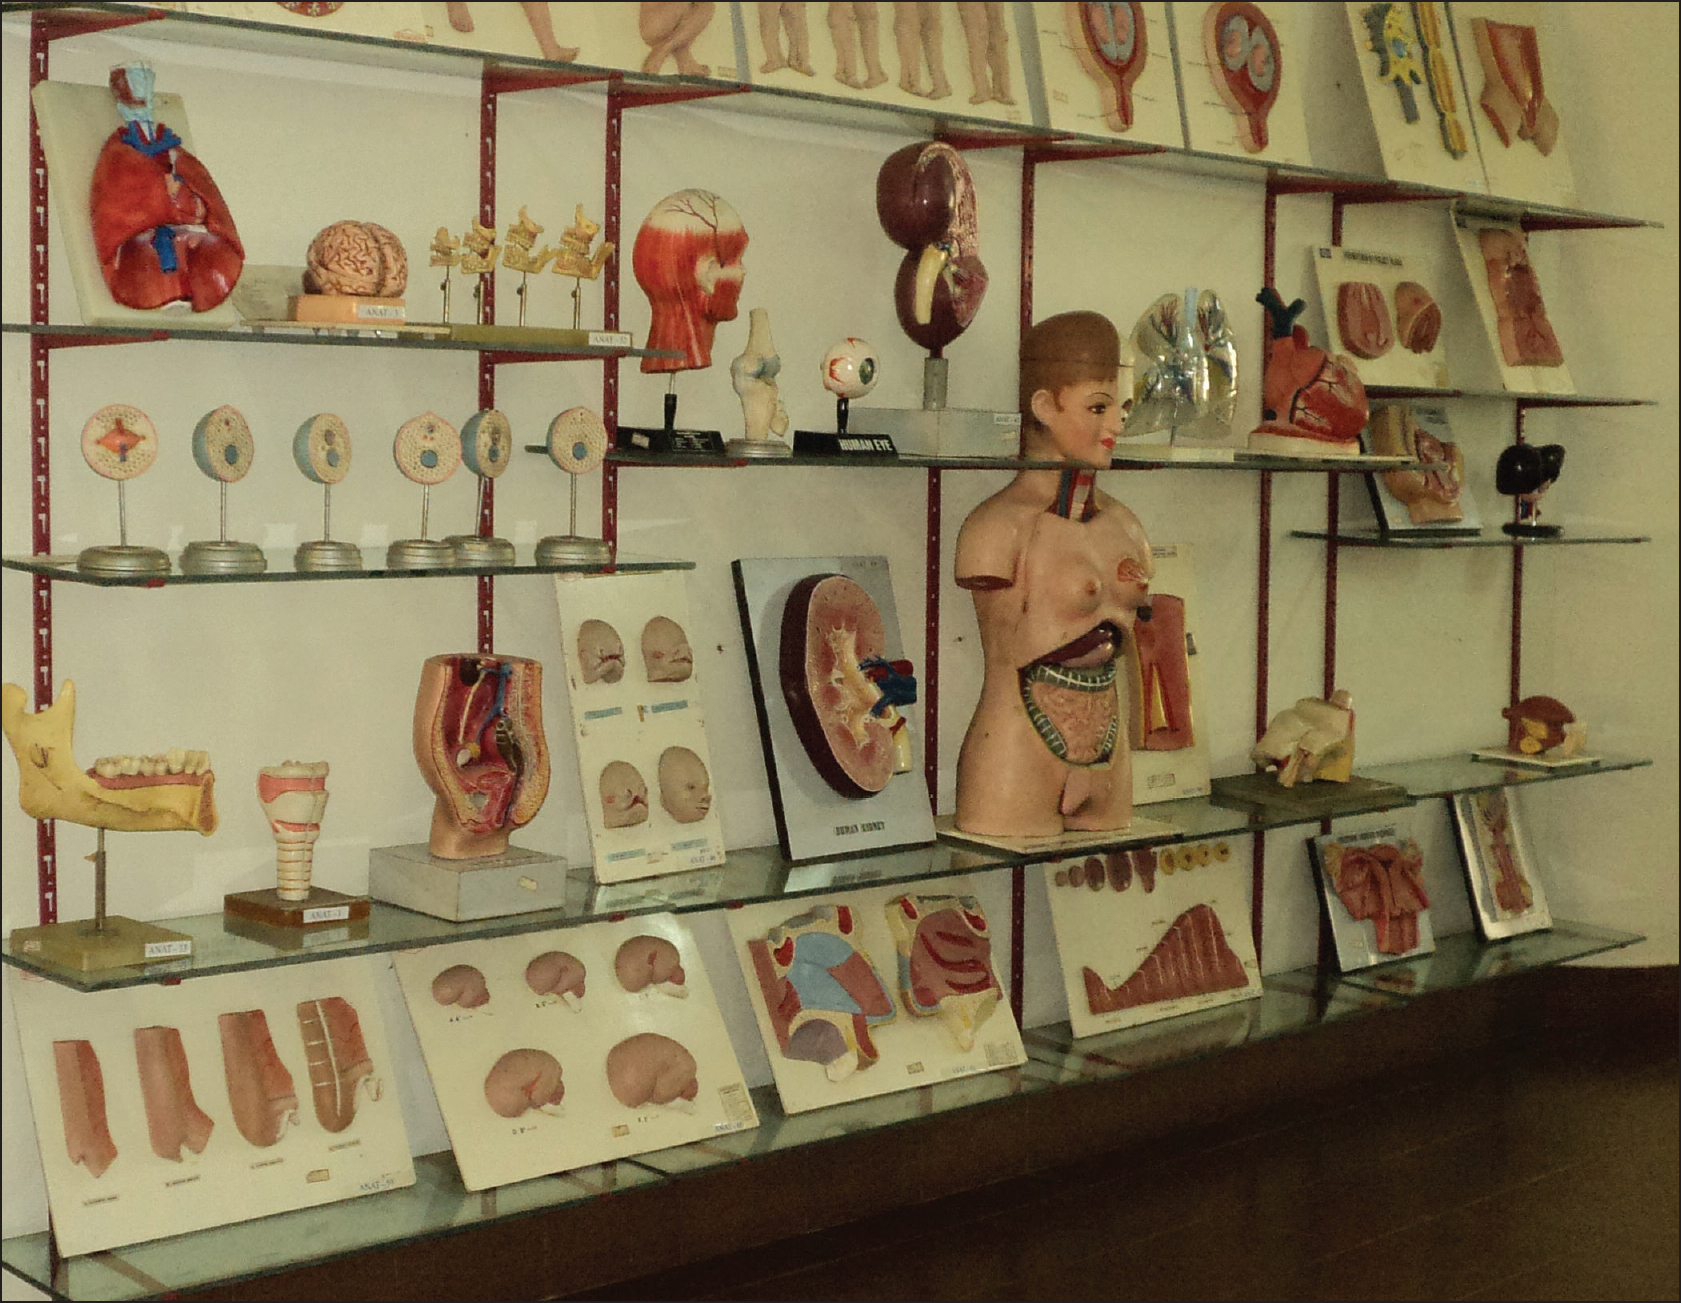 Figure 3: A section with models of various body parts. Courtesy Yenepoya Medical College Anatomy Museum, Mangalore